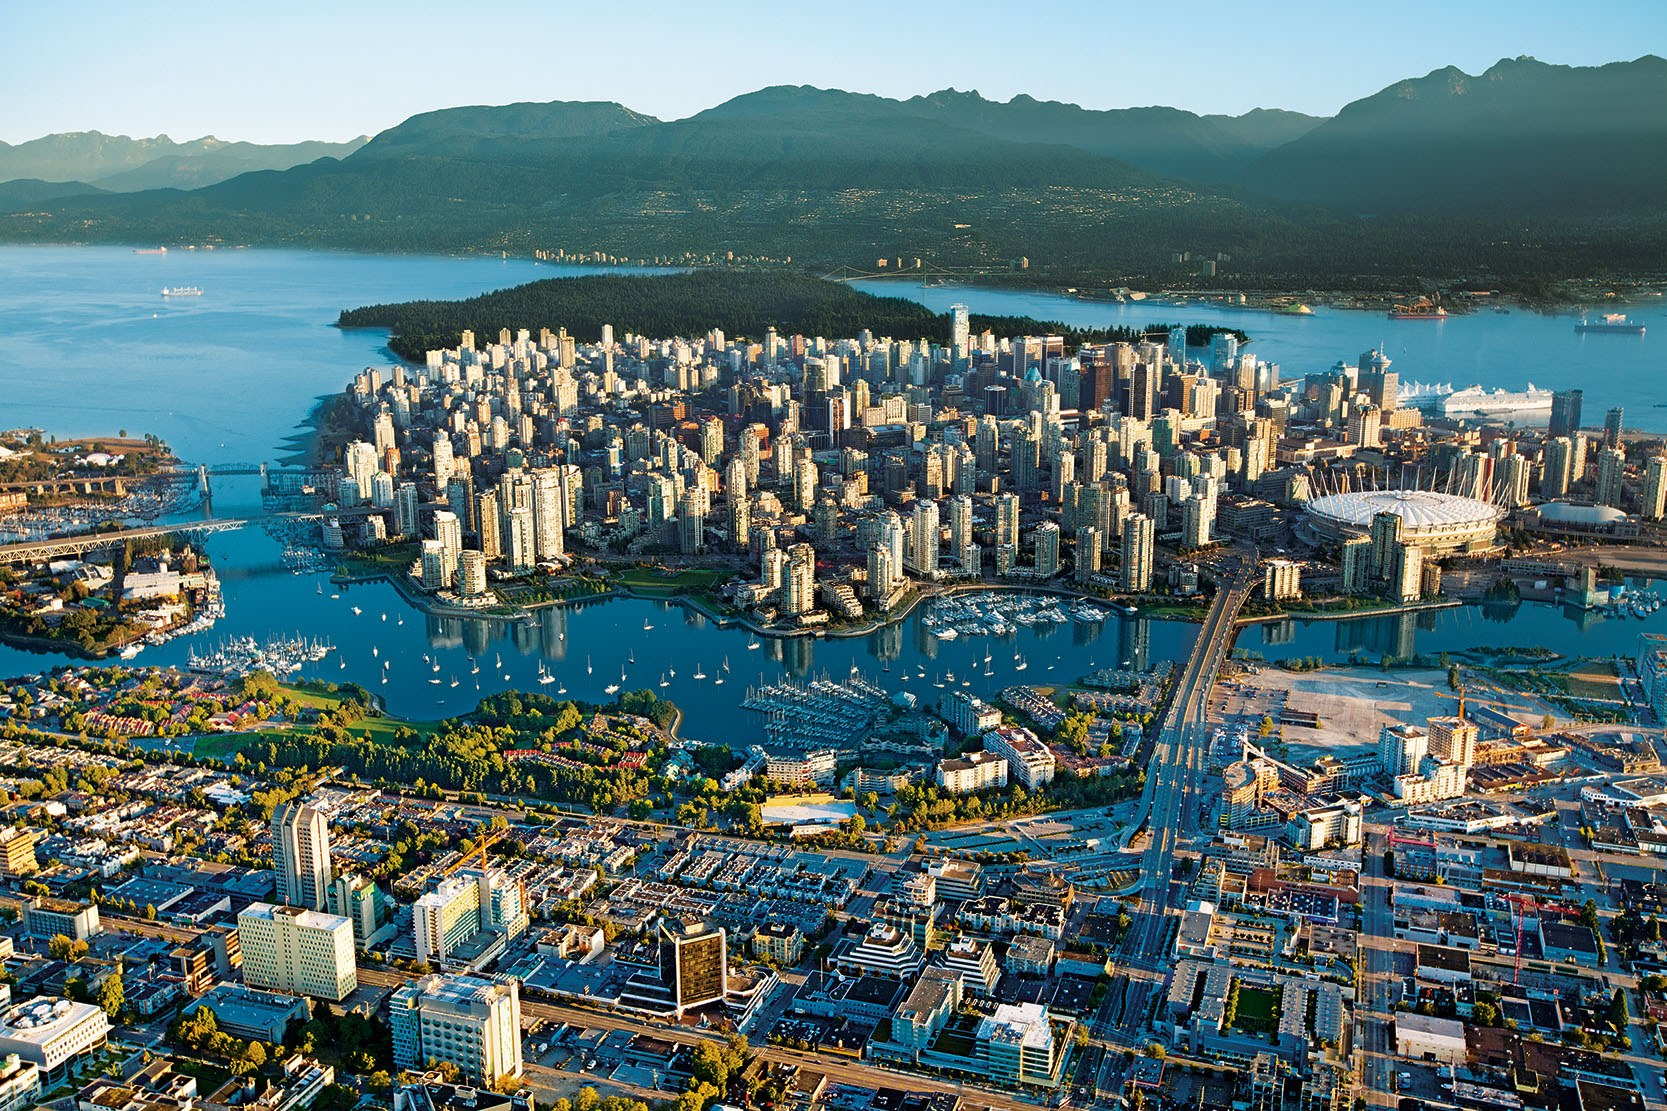 Just another beautiful Vancouver aerial shot (Vancouver Economic Commission)